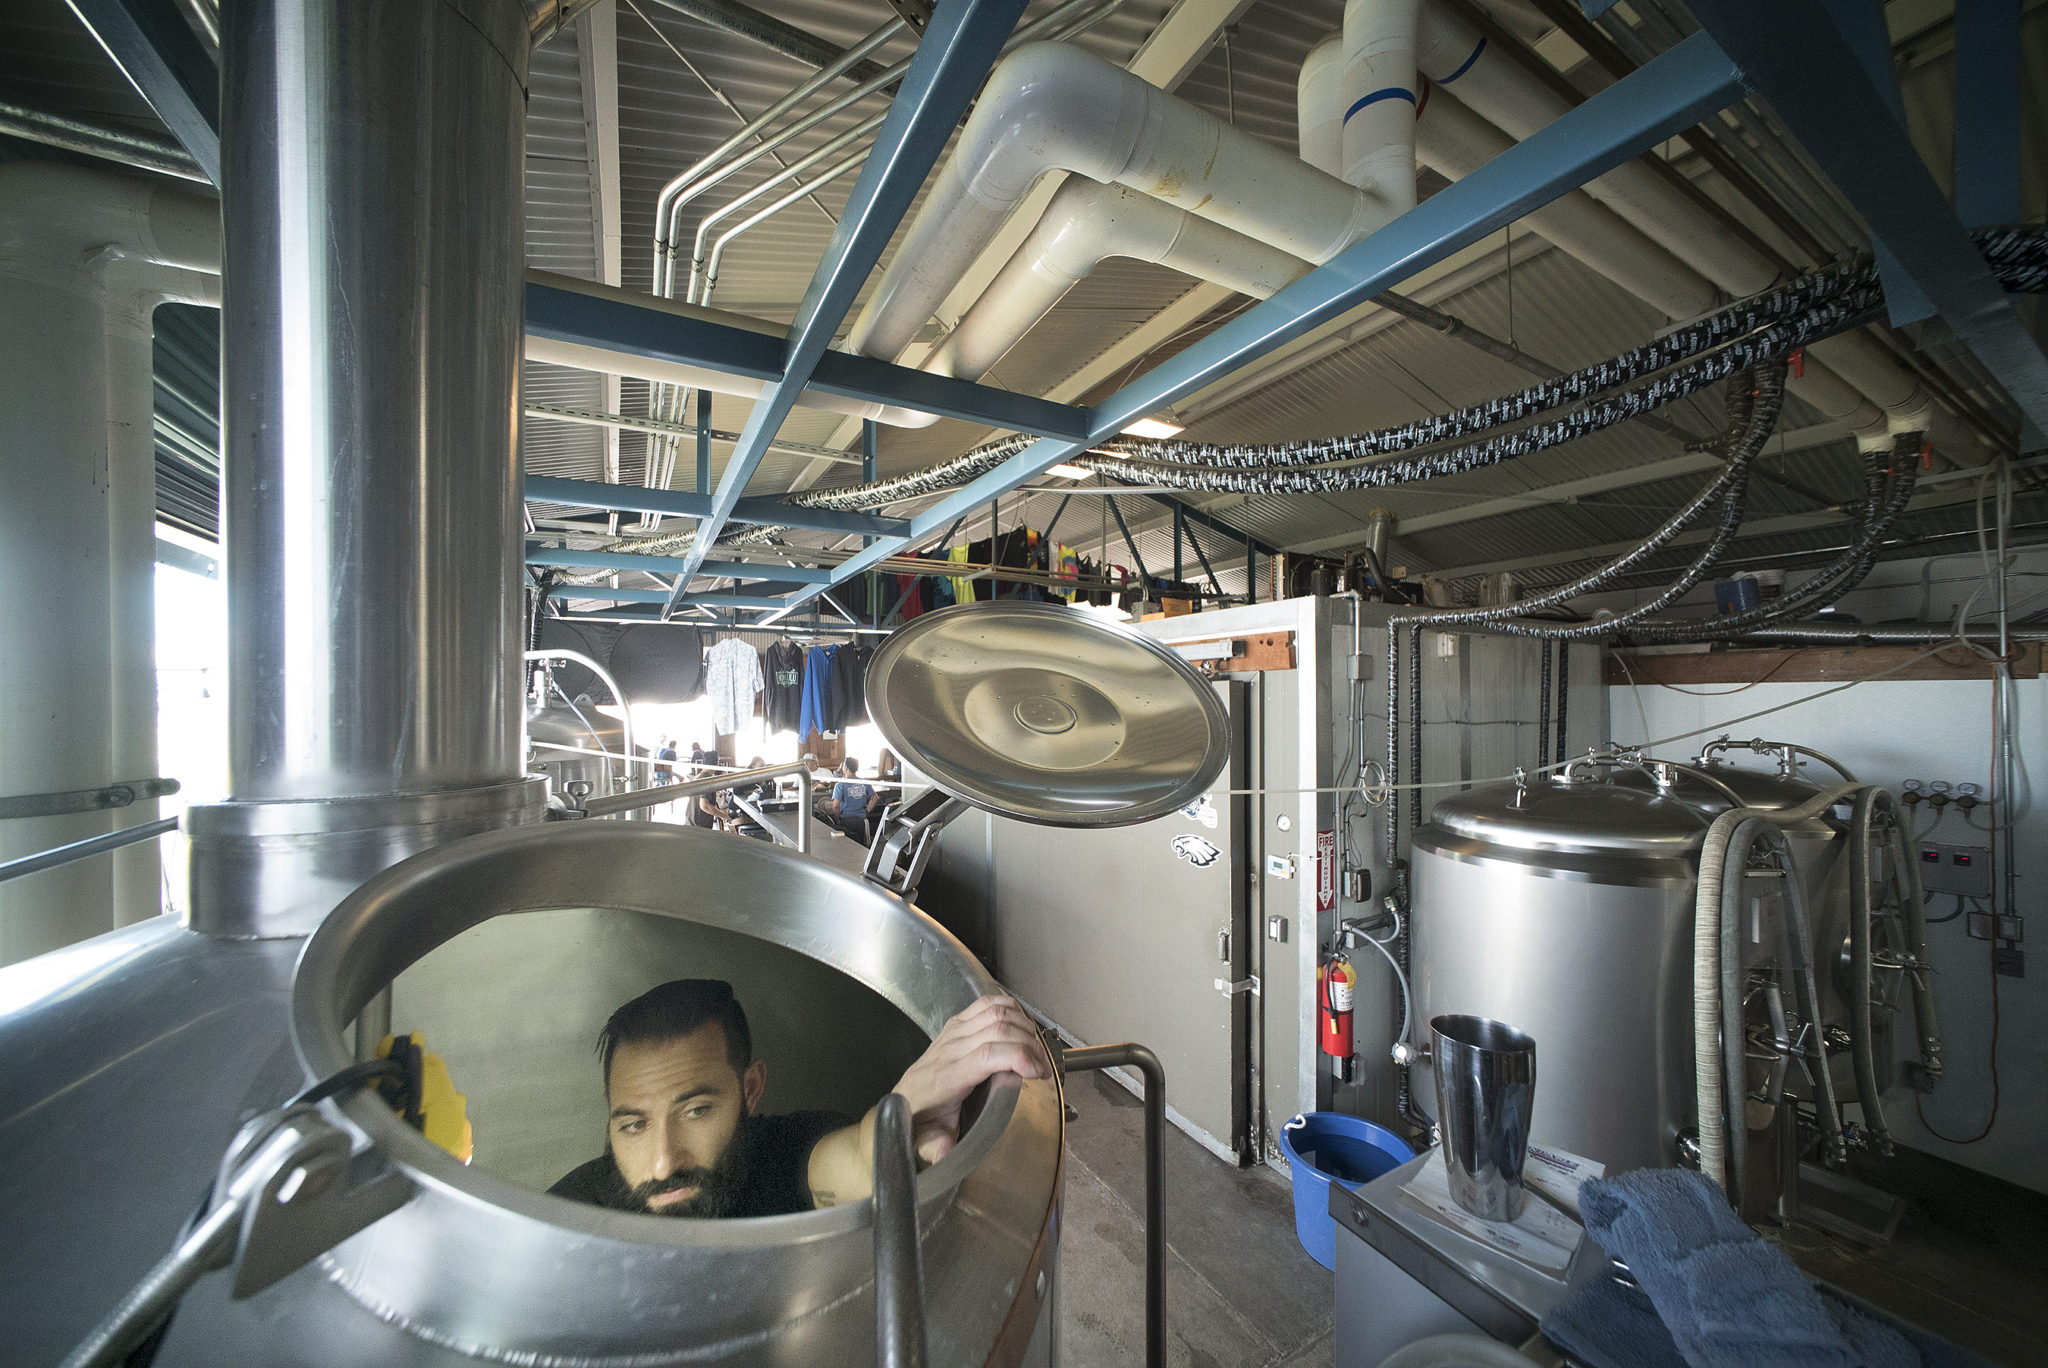 <p>After climbing through a small opening at the top of the wort kettle, Caldwell scrubs the stainless steel inner chamber with a scouring pad.</p>